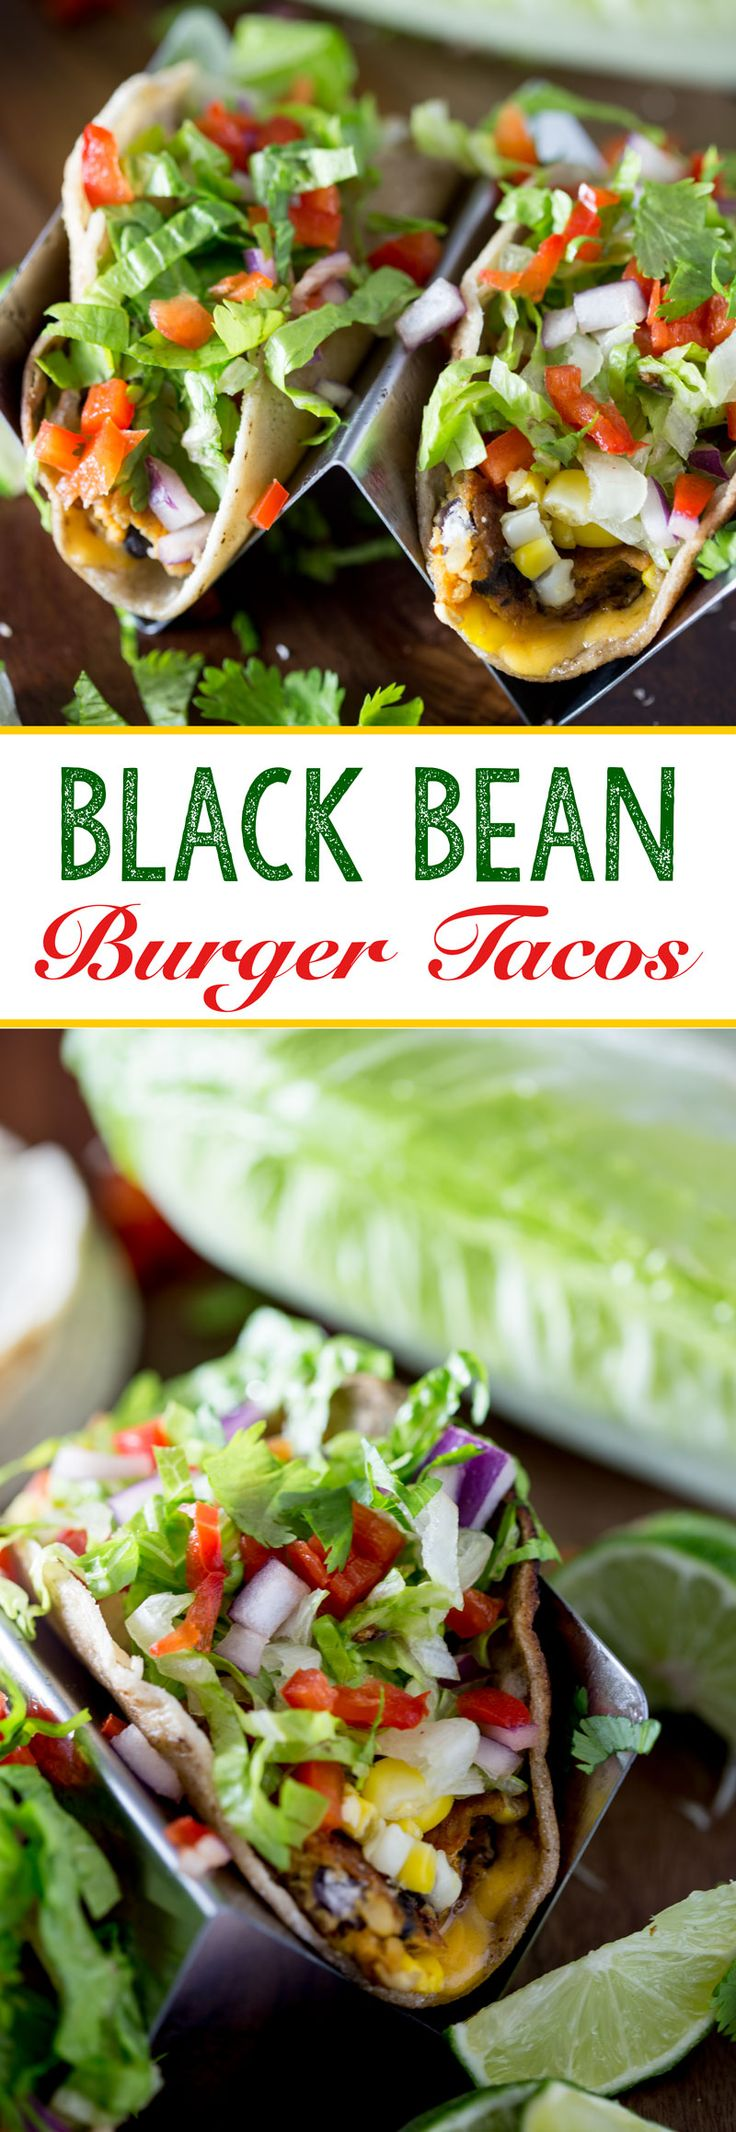 Chipotle Black bean burgers made into vegetarian tacos for an easy ...